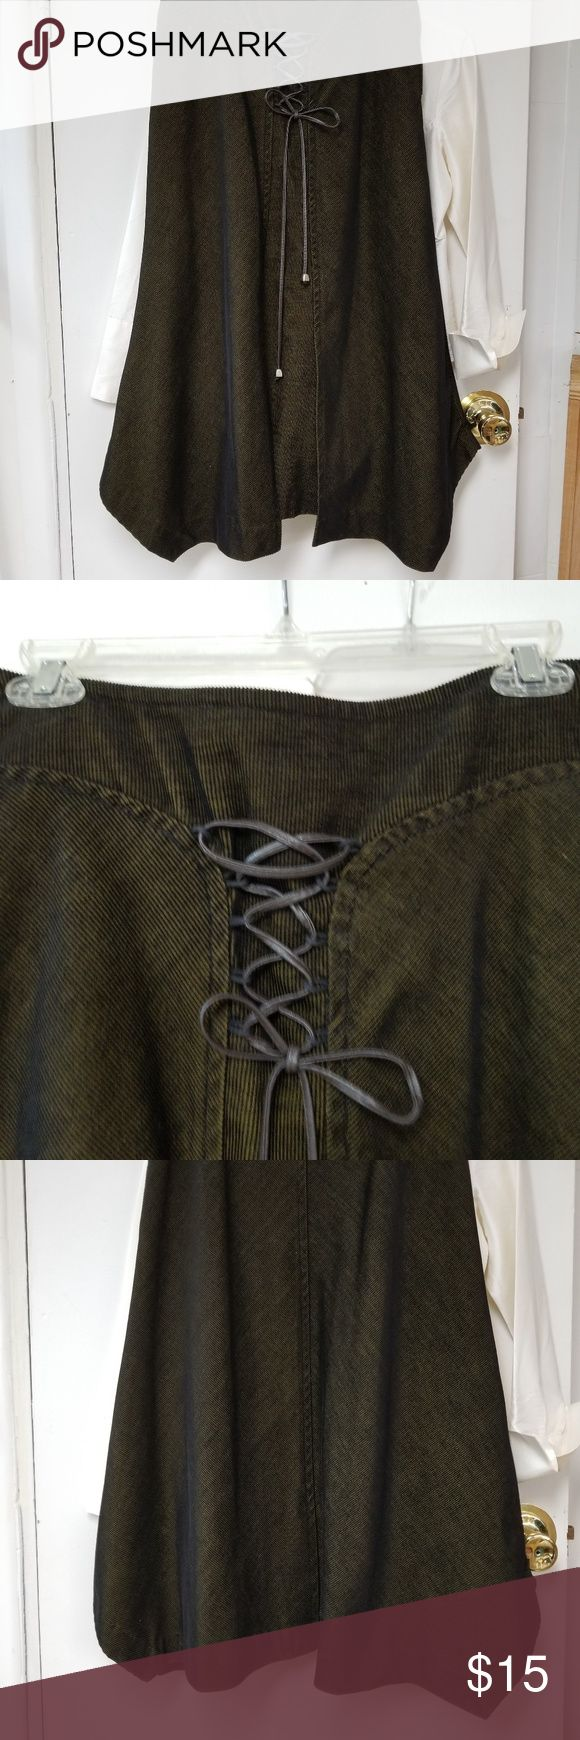 """HAZEL Corduroy Long Skirt Two-tone Black Sm Pre-owned, excellent condition. Asymmetrical hem thin wale corduroy skirt with brown leatherette lace-up front. The two-tone black wale with dark olive green background tricks the eye, to make the color appear brown. This makes it easy to combine with different colors. Side zipper closure; 55% Cotton 45% Poly; fully lined 100% Poly. Label says Dry clean but I have washed it in cold water and it has maintained its sizing. Waist 28""""; side length 28""""…"""